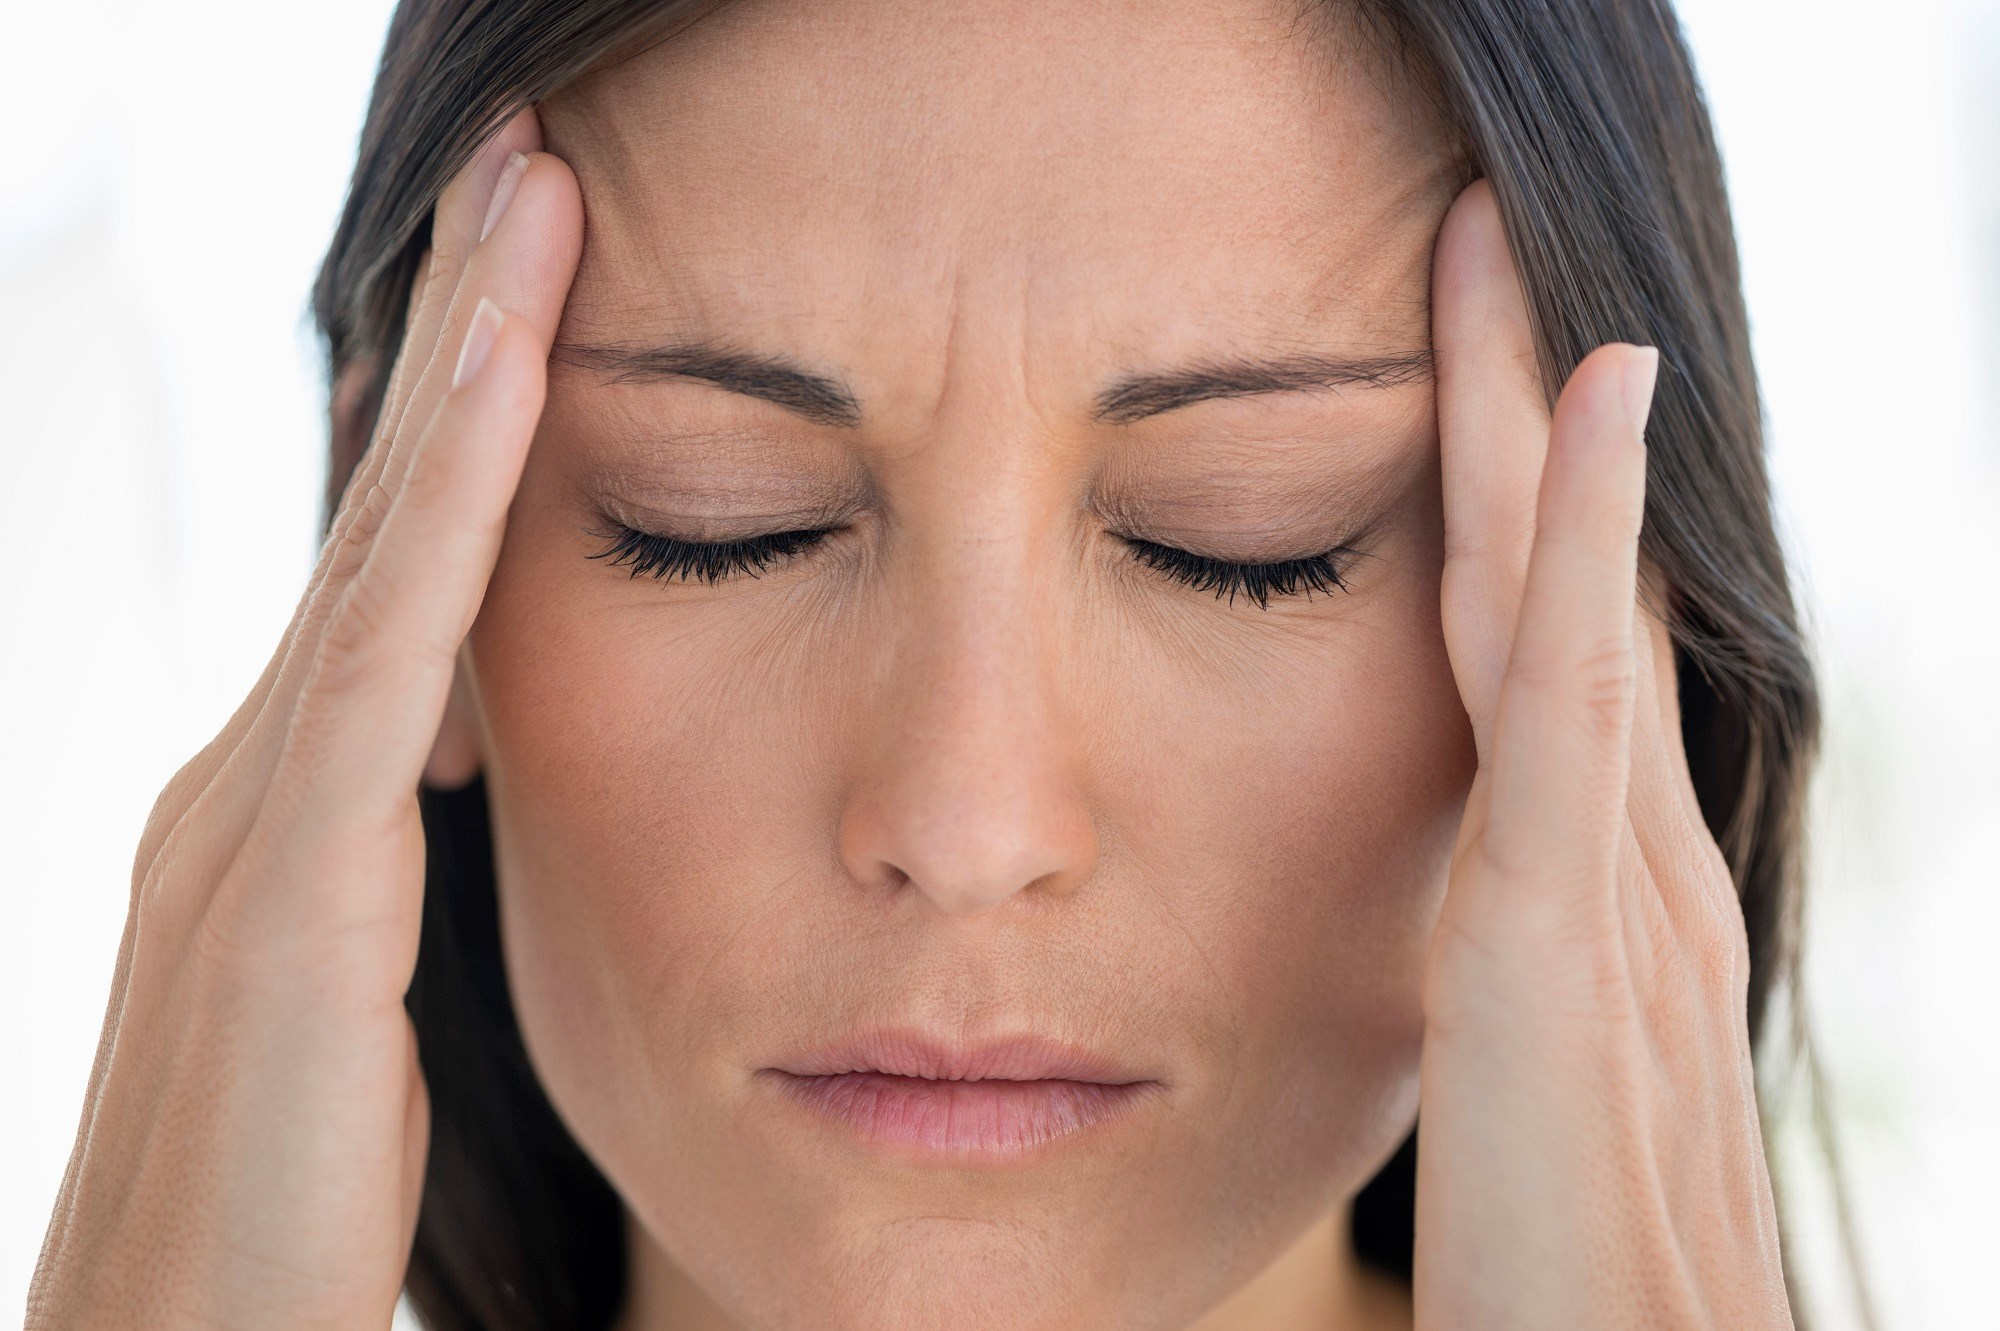 Fremanezumab May Have Long-Term Efficacy as a Prophylactic for Chronic Migraine